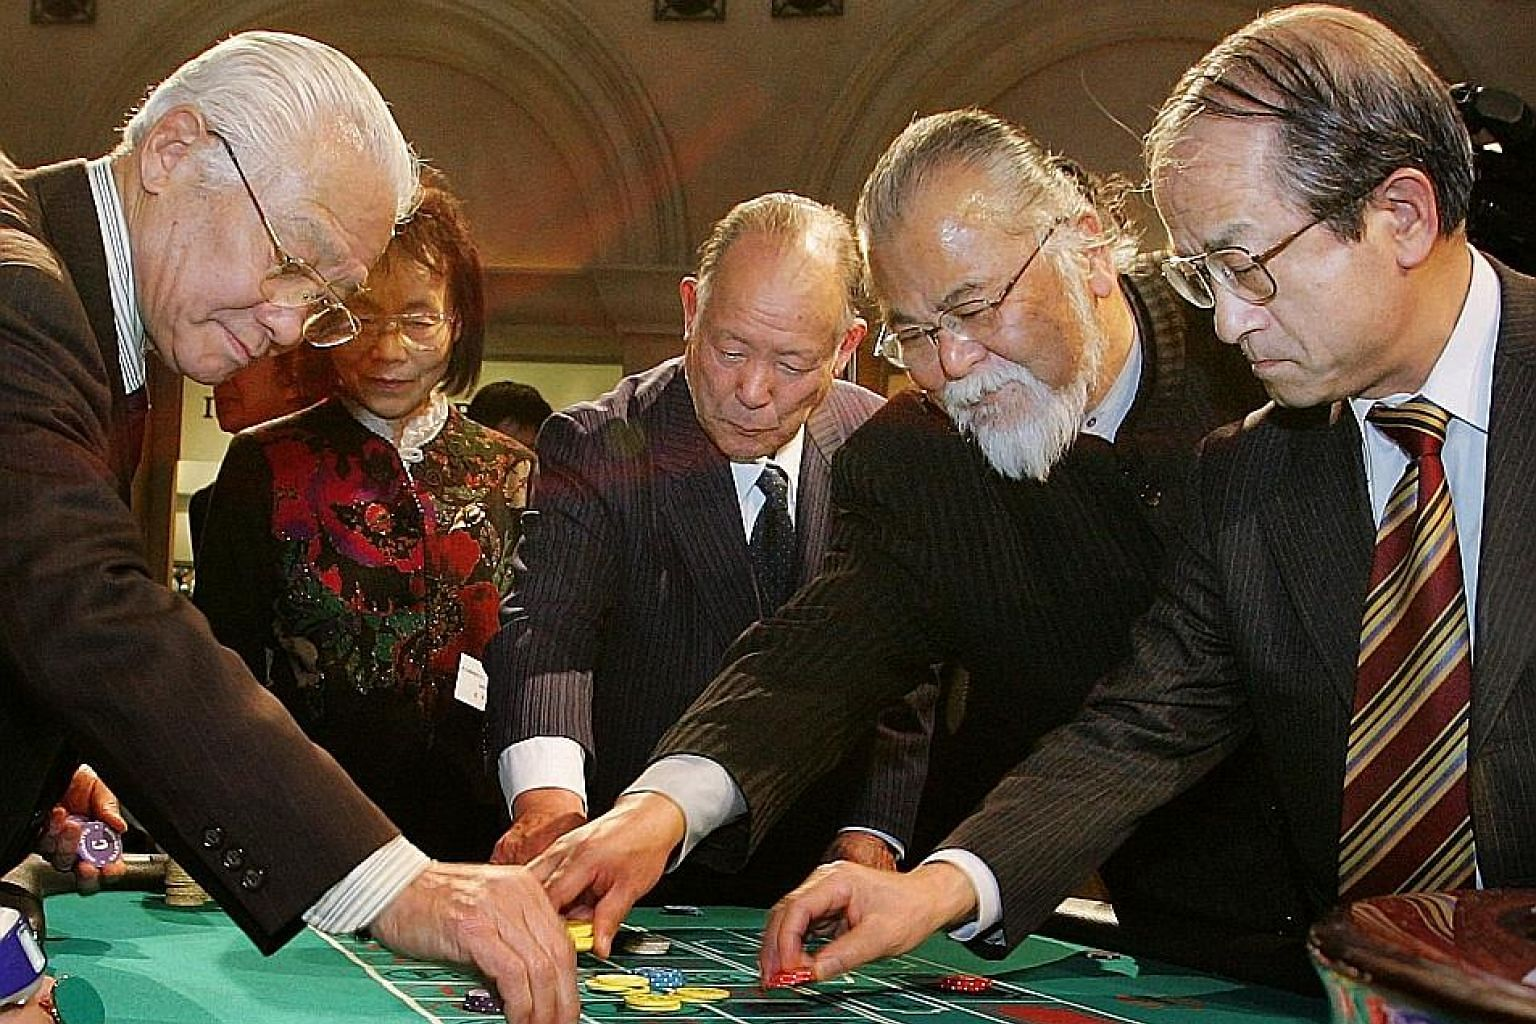 Gaming consultancies have said Japan's casino market could be worth about US$16 billion (S$22 billion), about half of Macau's yearly revenues but some US$5 billion more than that of Las Vegas.